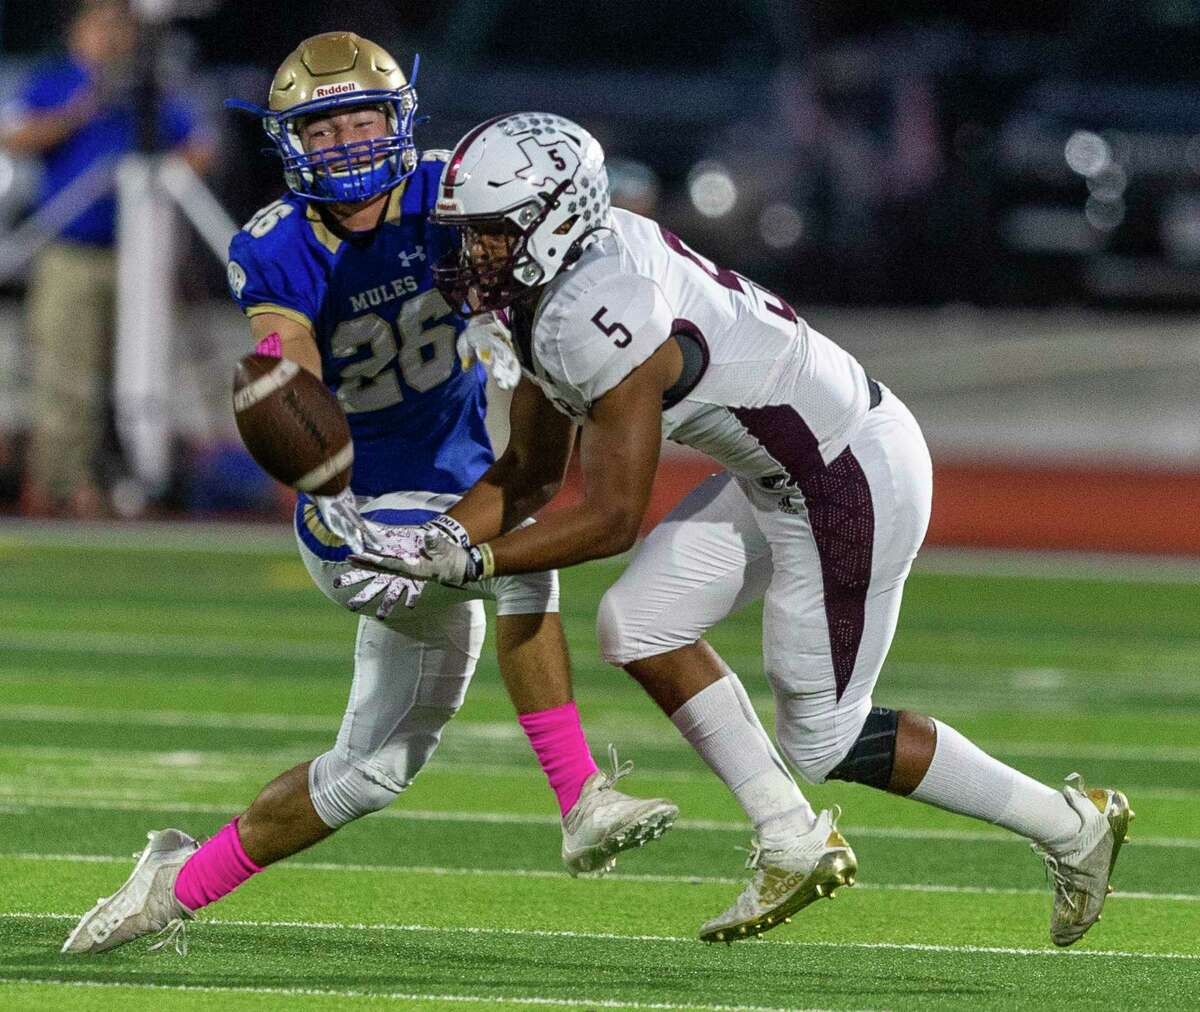 Alamo Heights defender Jack Kardys breaks up a pass Friday, Oct. 8, 2021 intended for Floresville running back Dareion Murphy during the first half of the Mules' homecoming game against the Tigers.